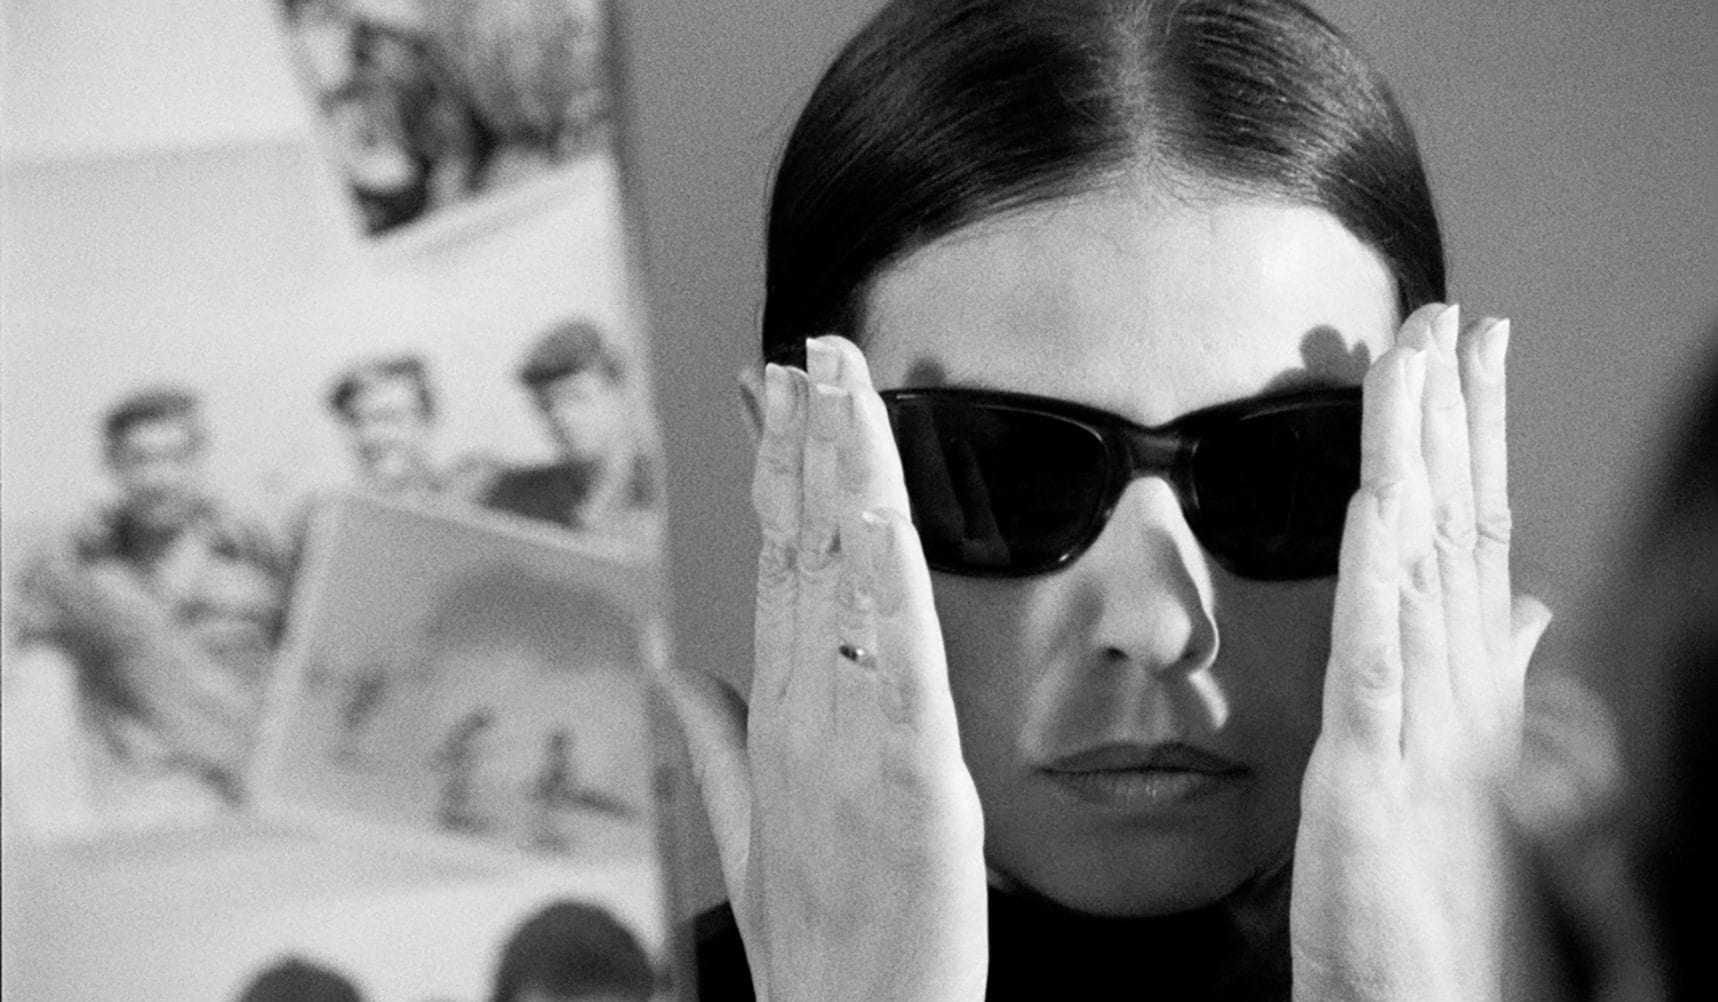 Three years ago, Jerusalem Cinematheque set out a plan to preserve more than 30,000 Israeli films within its archive. Today it continues with 'Siege'.